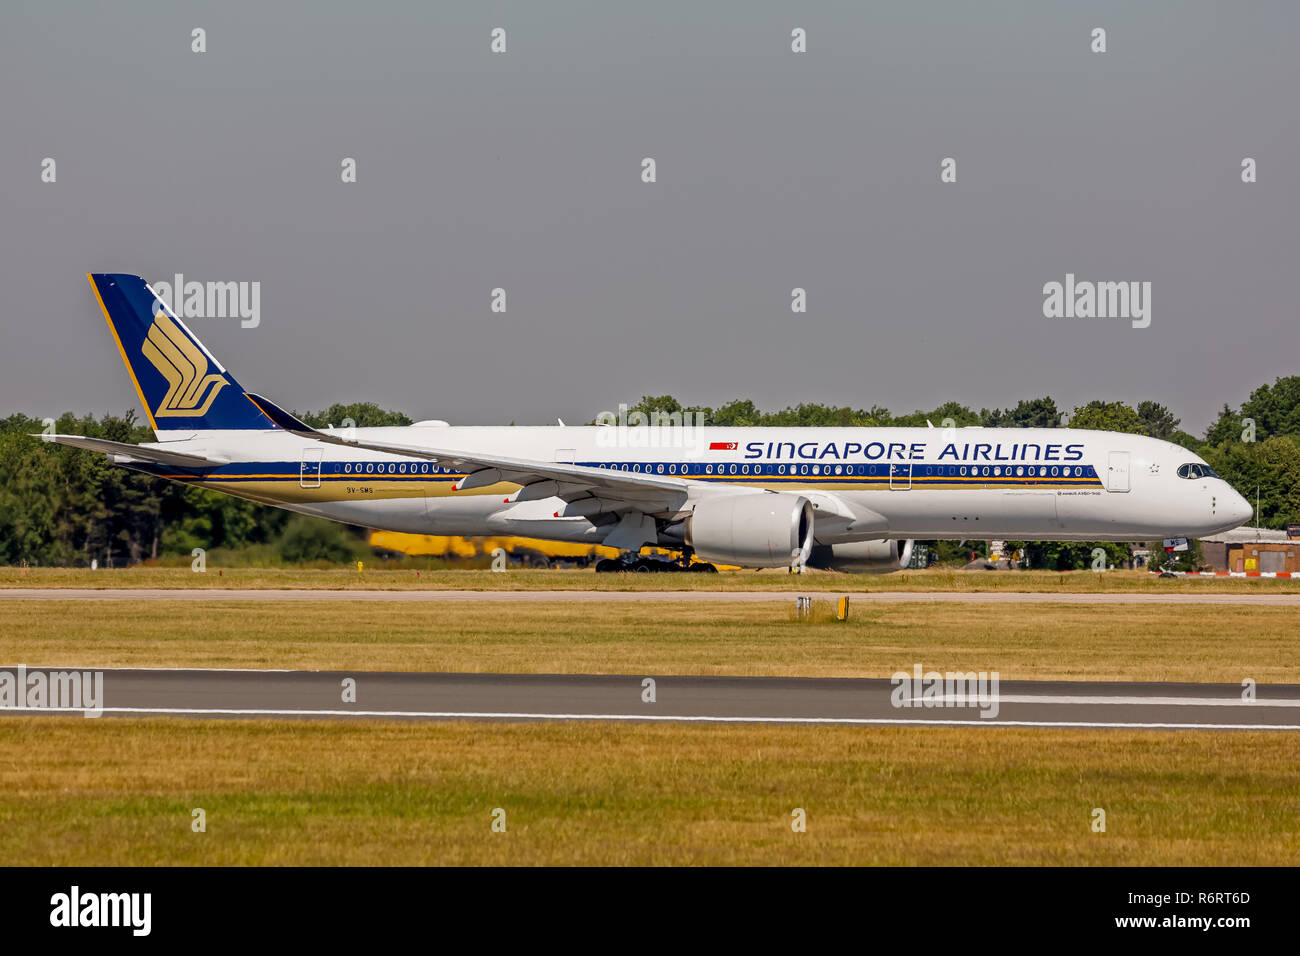 A Singapore Airlines Airbus A350, registration 9V-SMS taxying back to the terminal at manchester Airport in England. - Stock Image